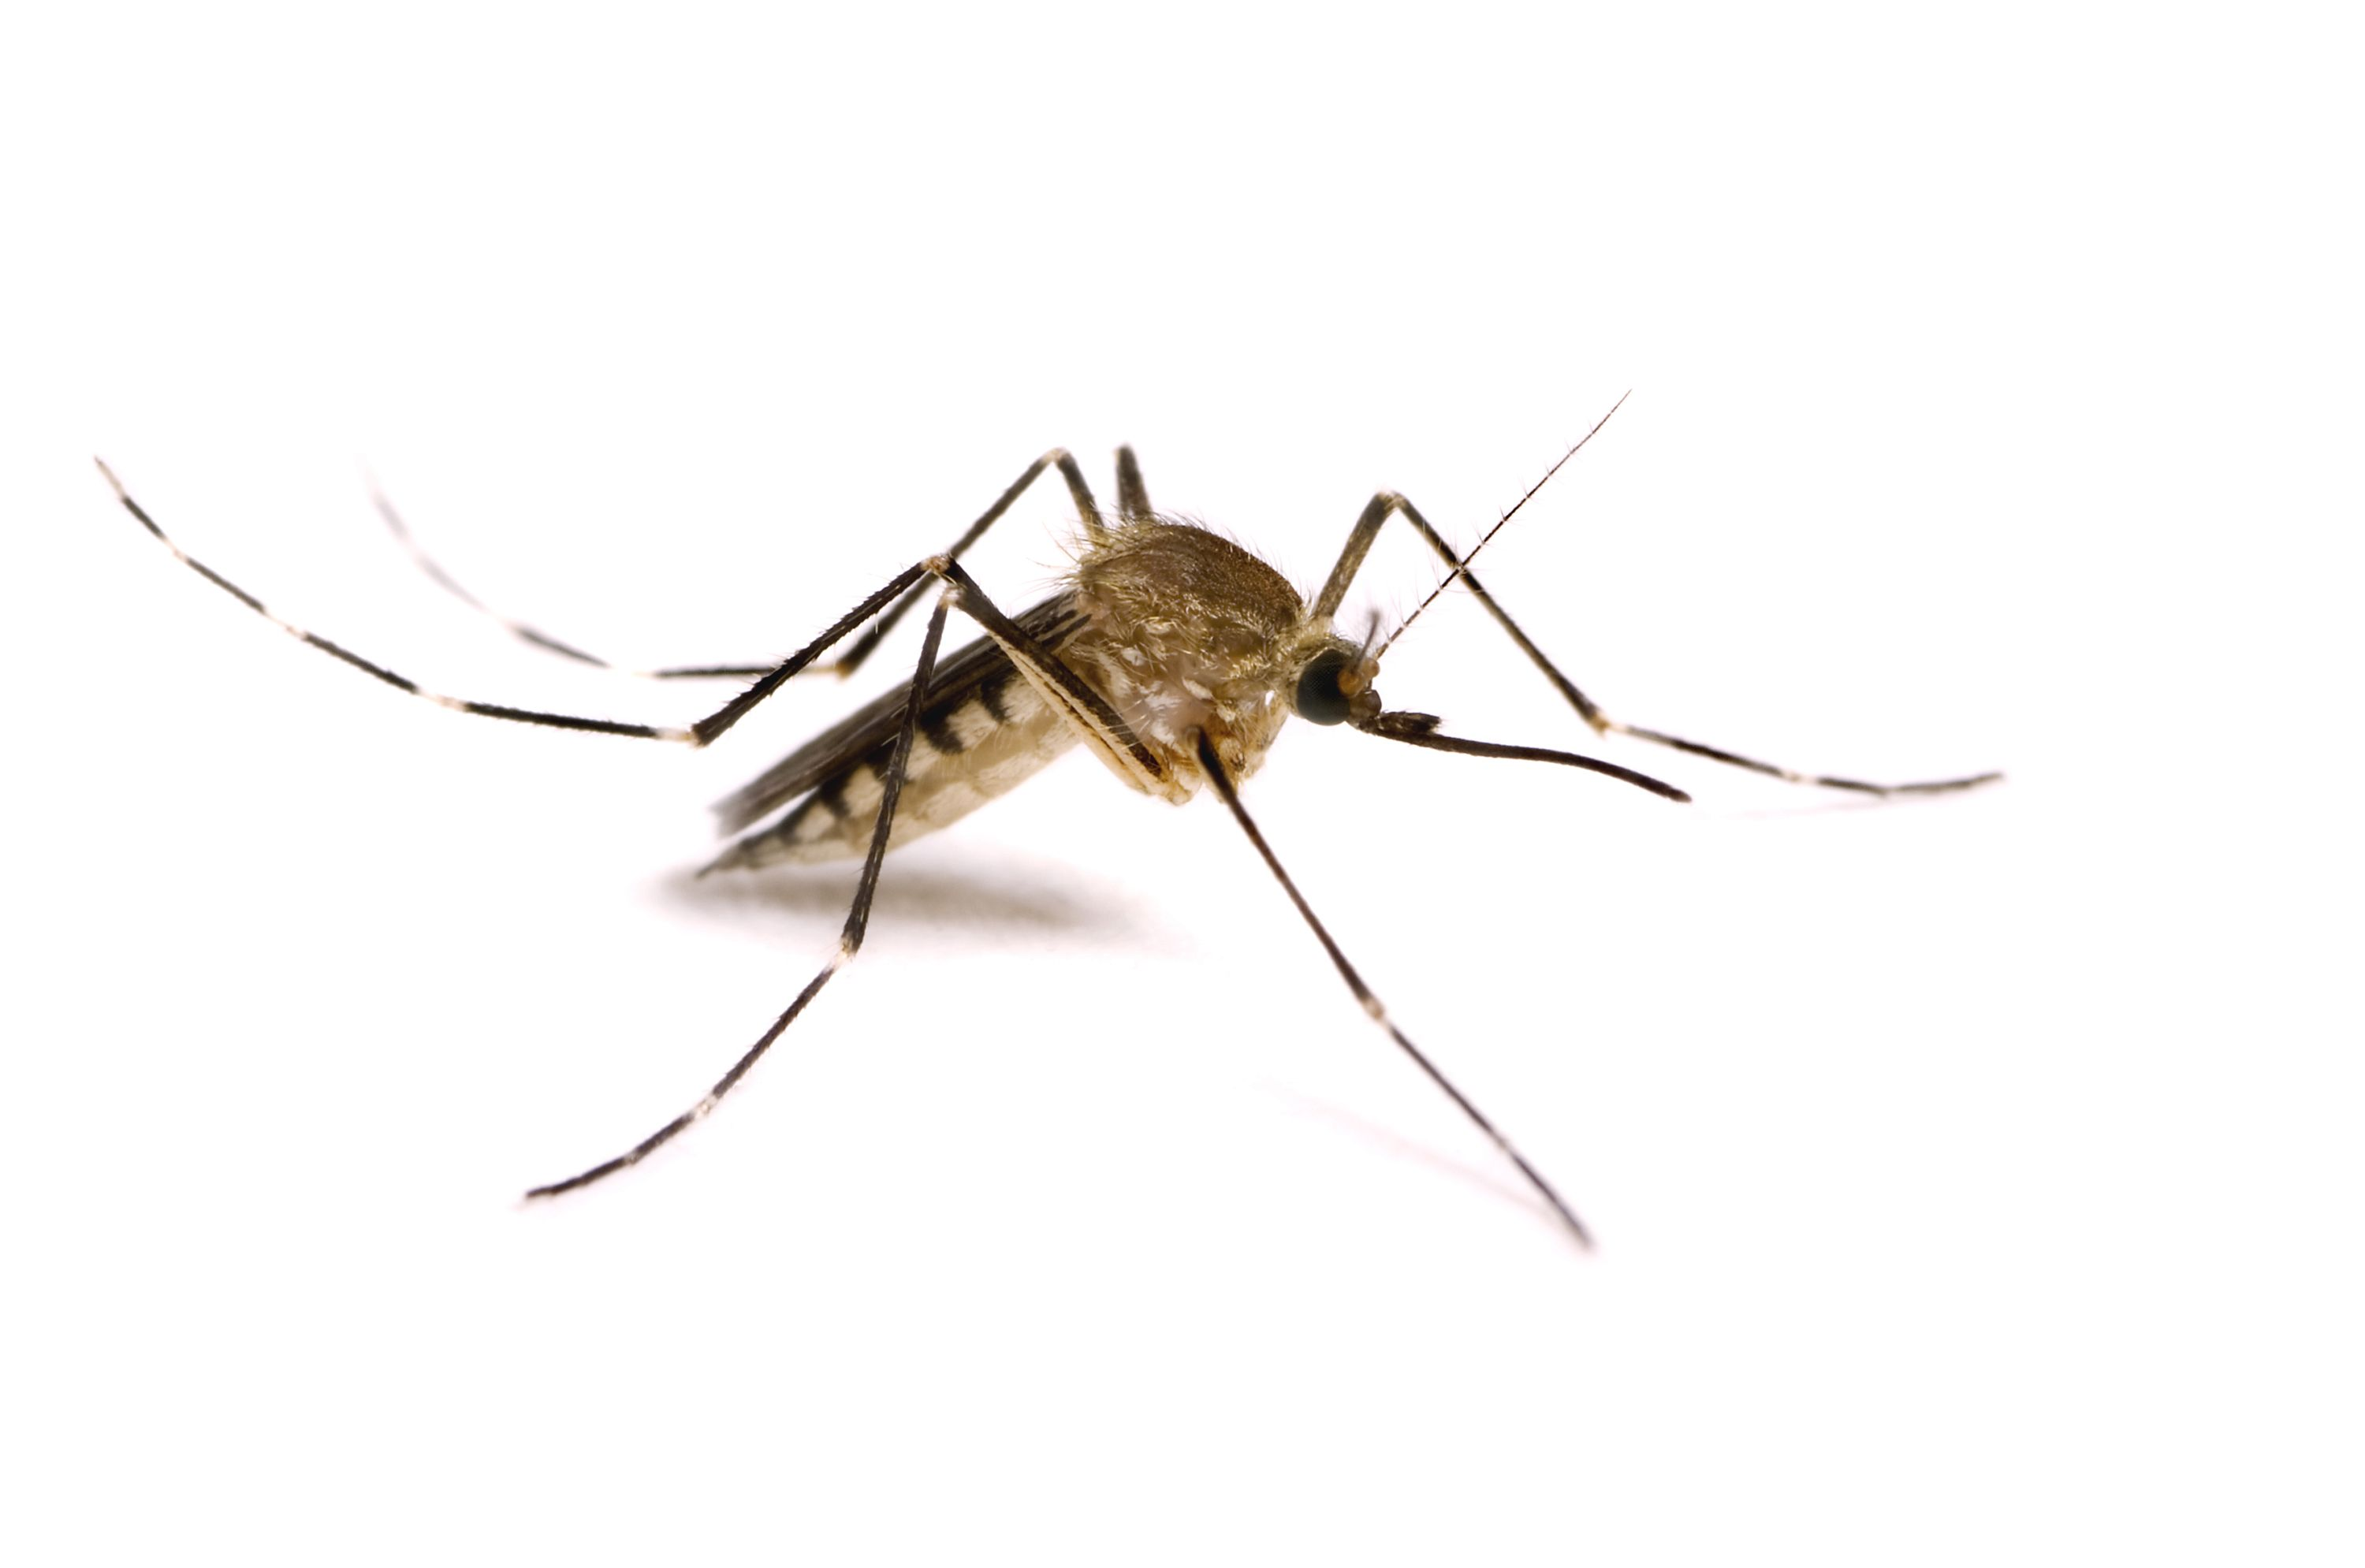 700x400px Best Mosquito wallpapers 32